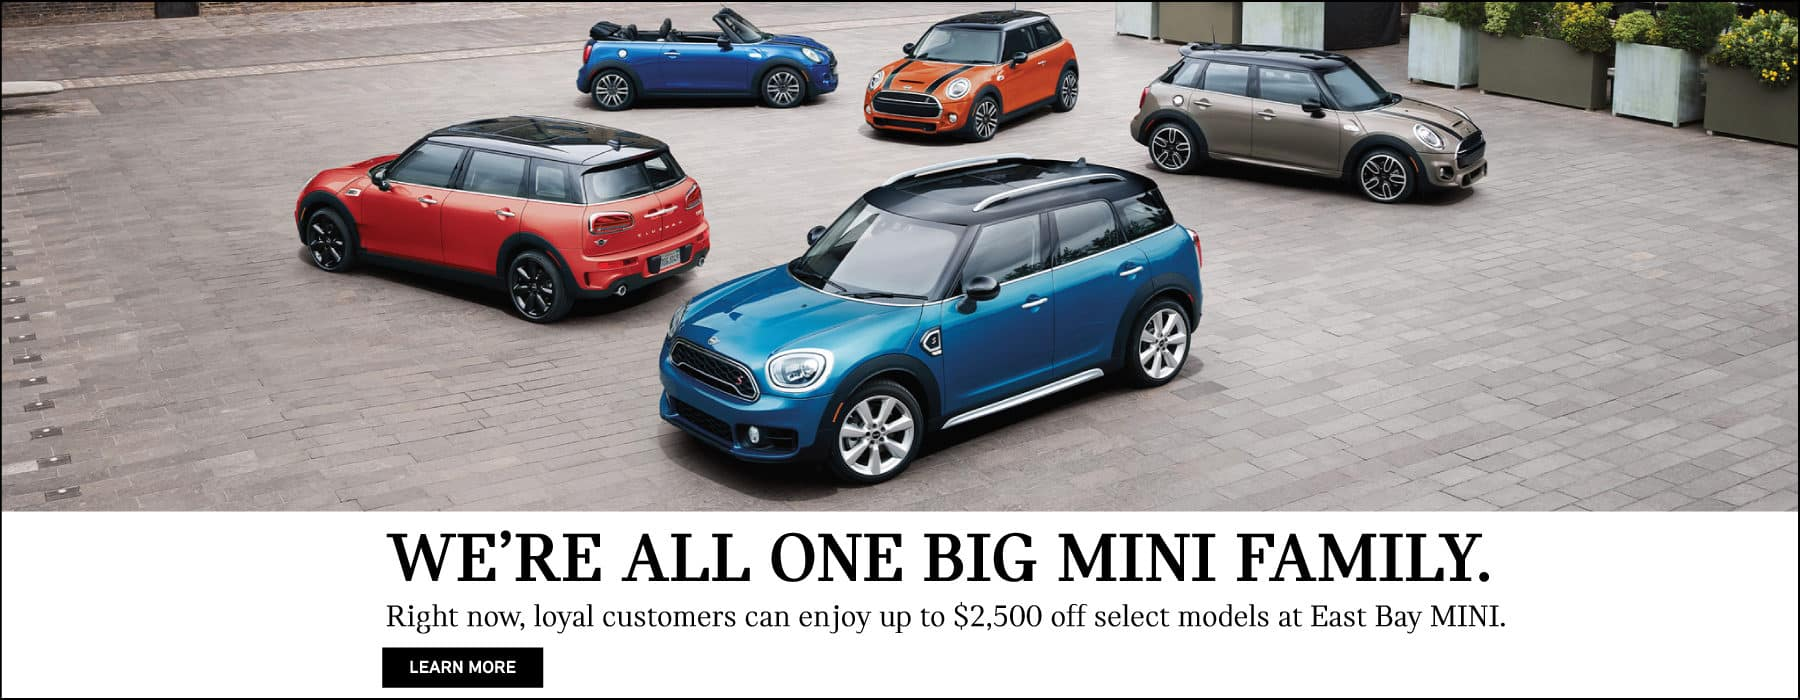 We're all one big MINI family. Right now, loyal customers can enjoy up to $2,500 off select models at East Bay MINI. Learn more button. MINI family on brick street.